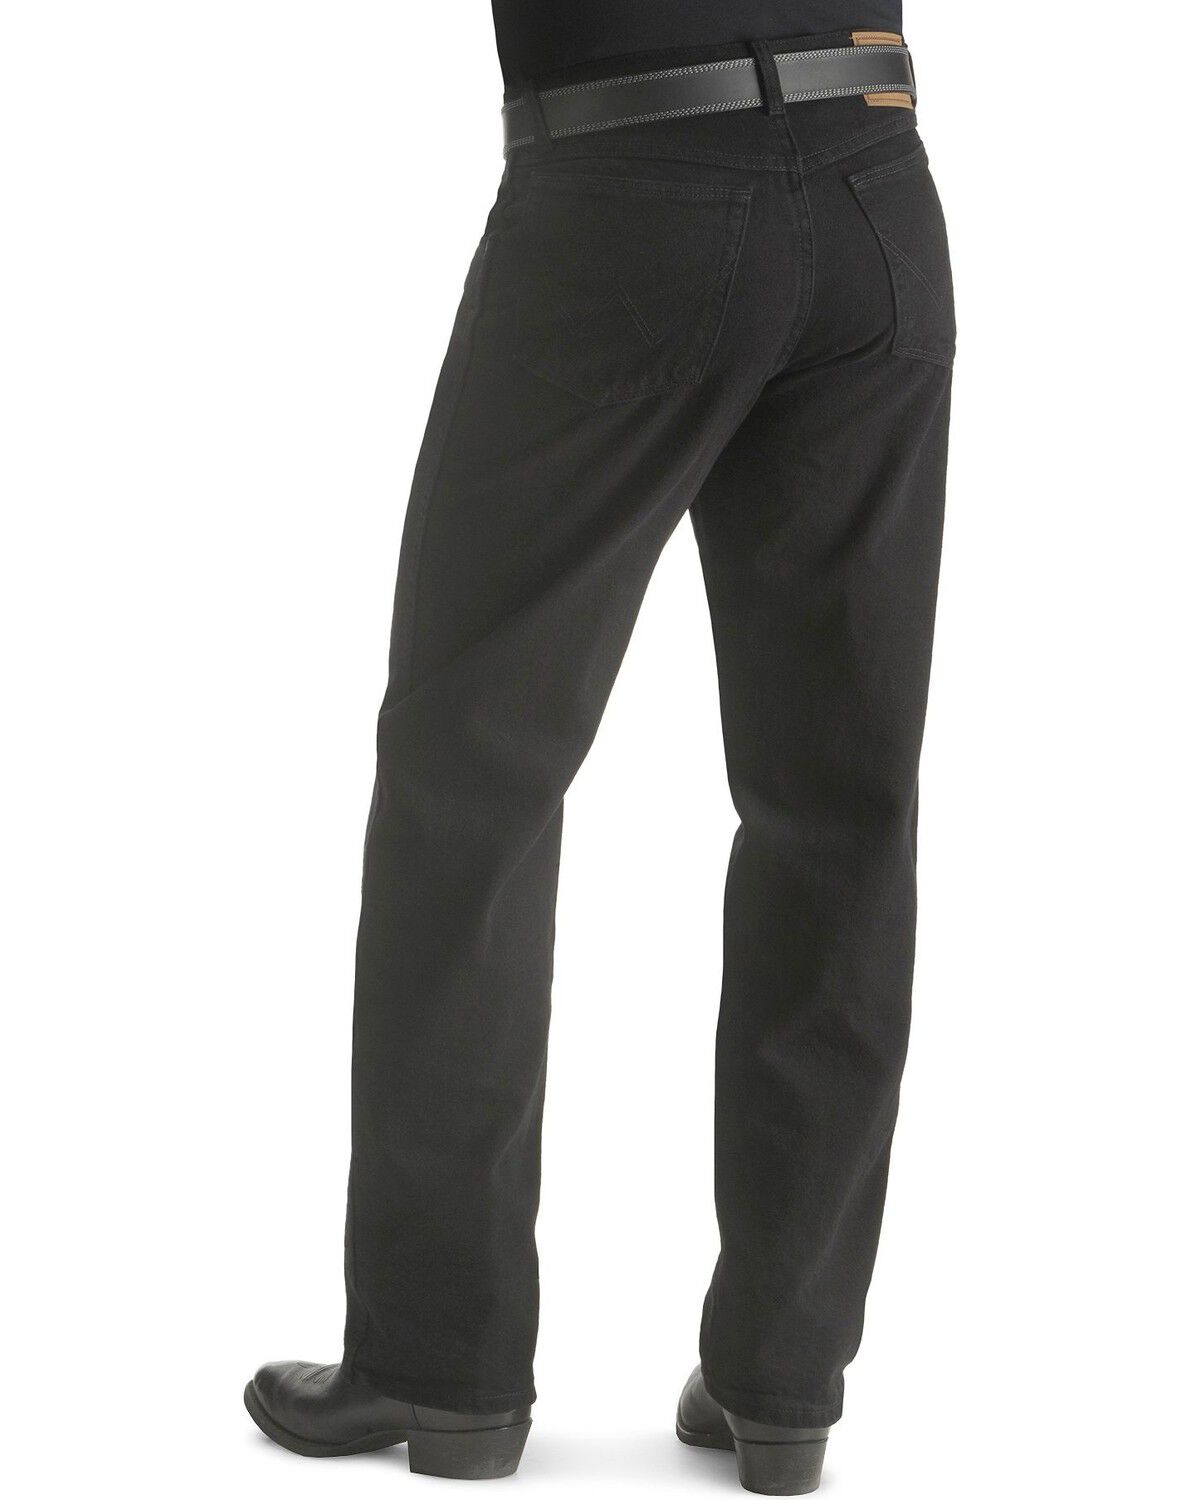 Attractive Wrangler Rugged Wear Menu0027s Relaxed Fit Jeans, Black, Hi Res